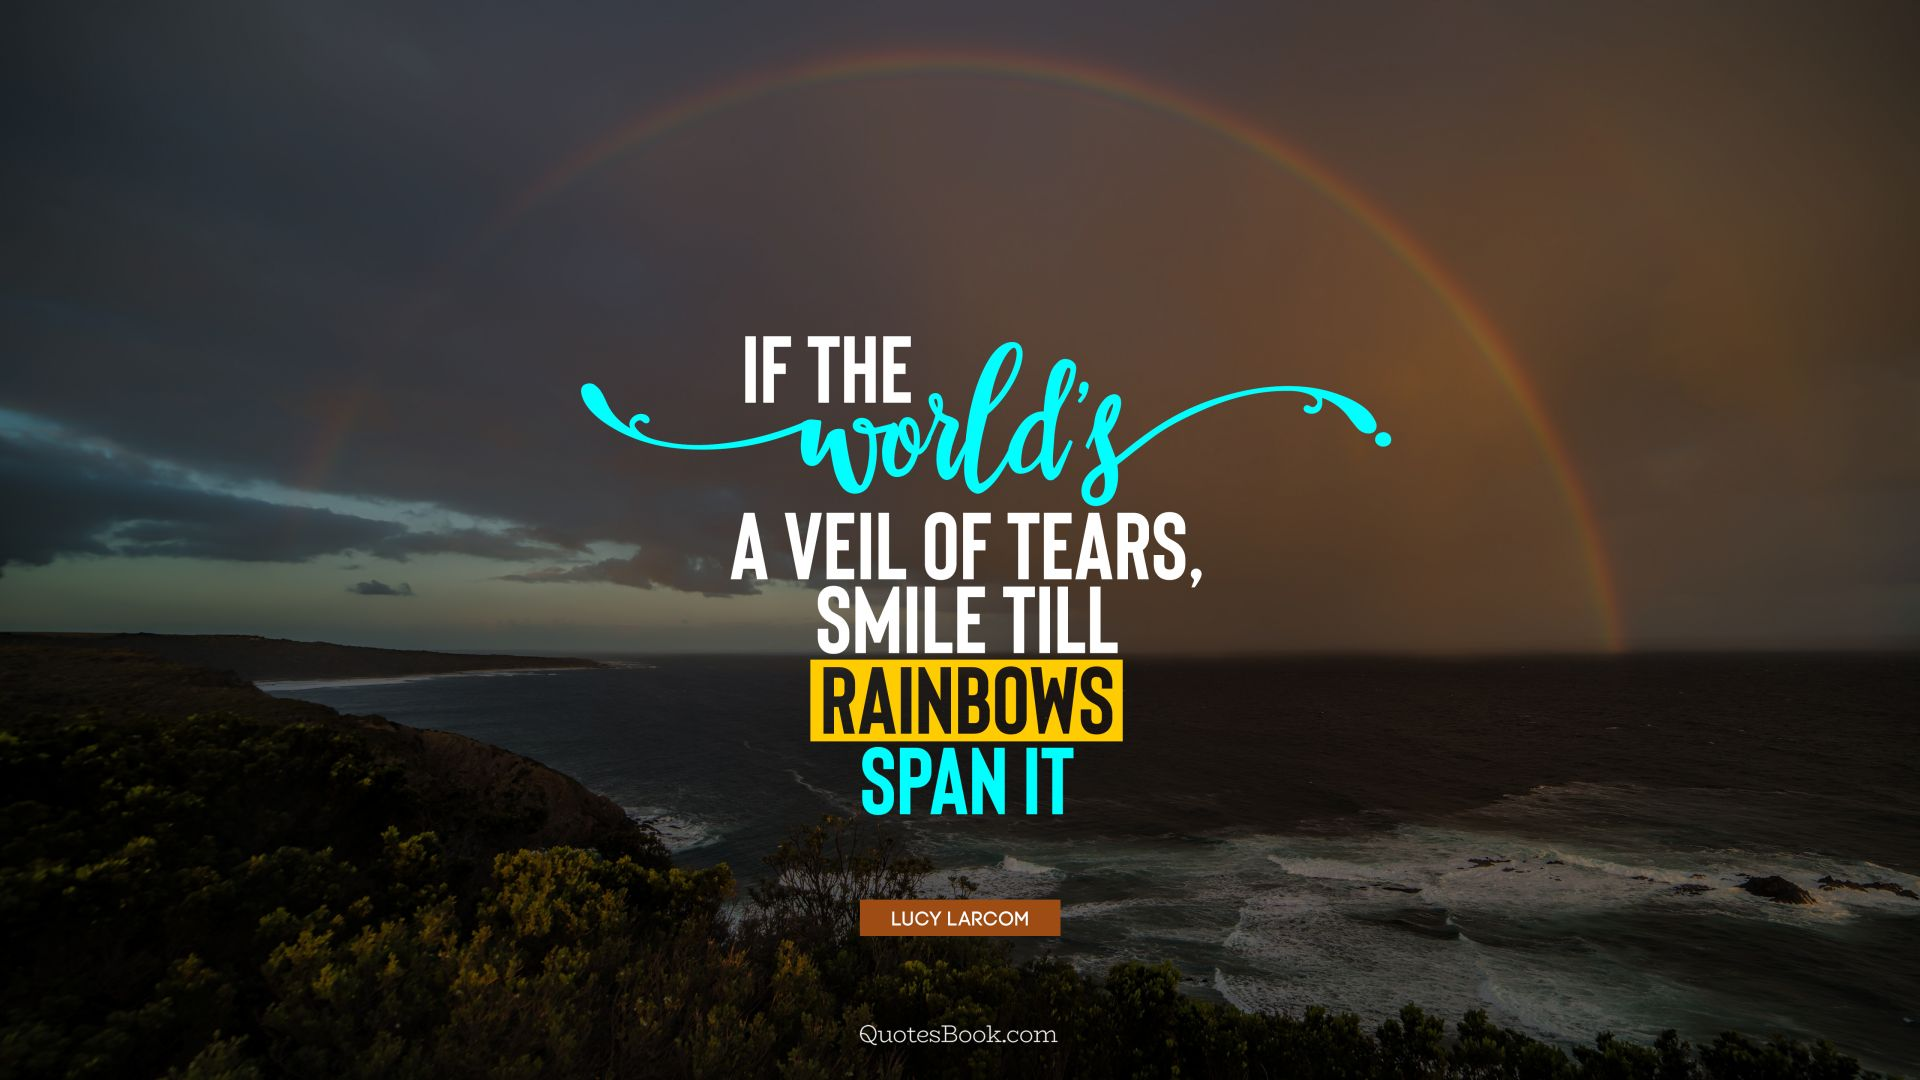 If the world's a veil of tears, Smile till rainbows span it. - Quote by Lucy Larcom